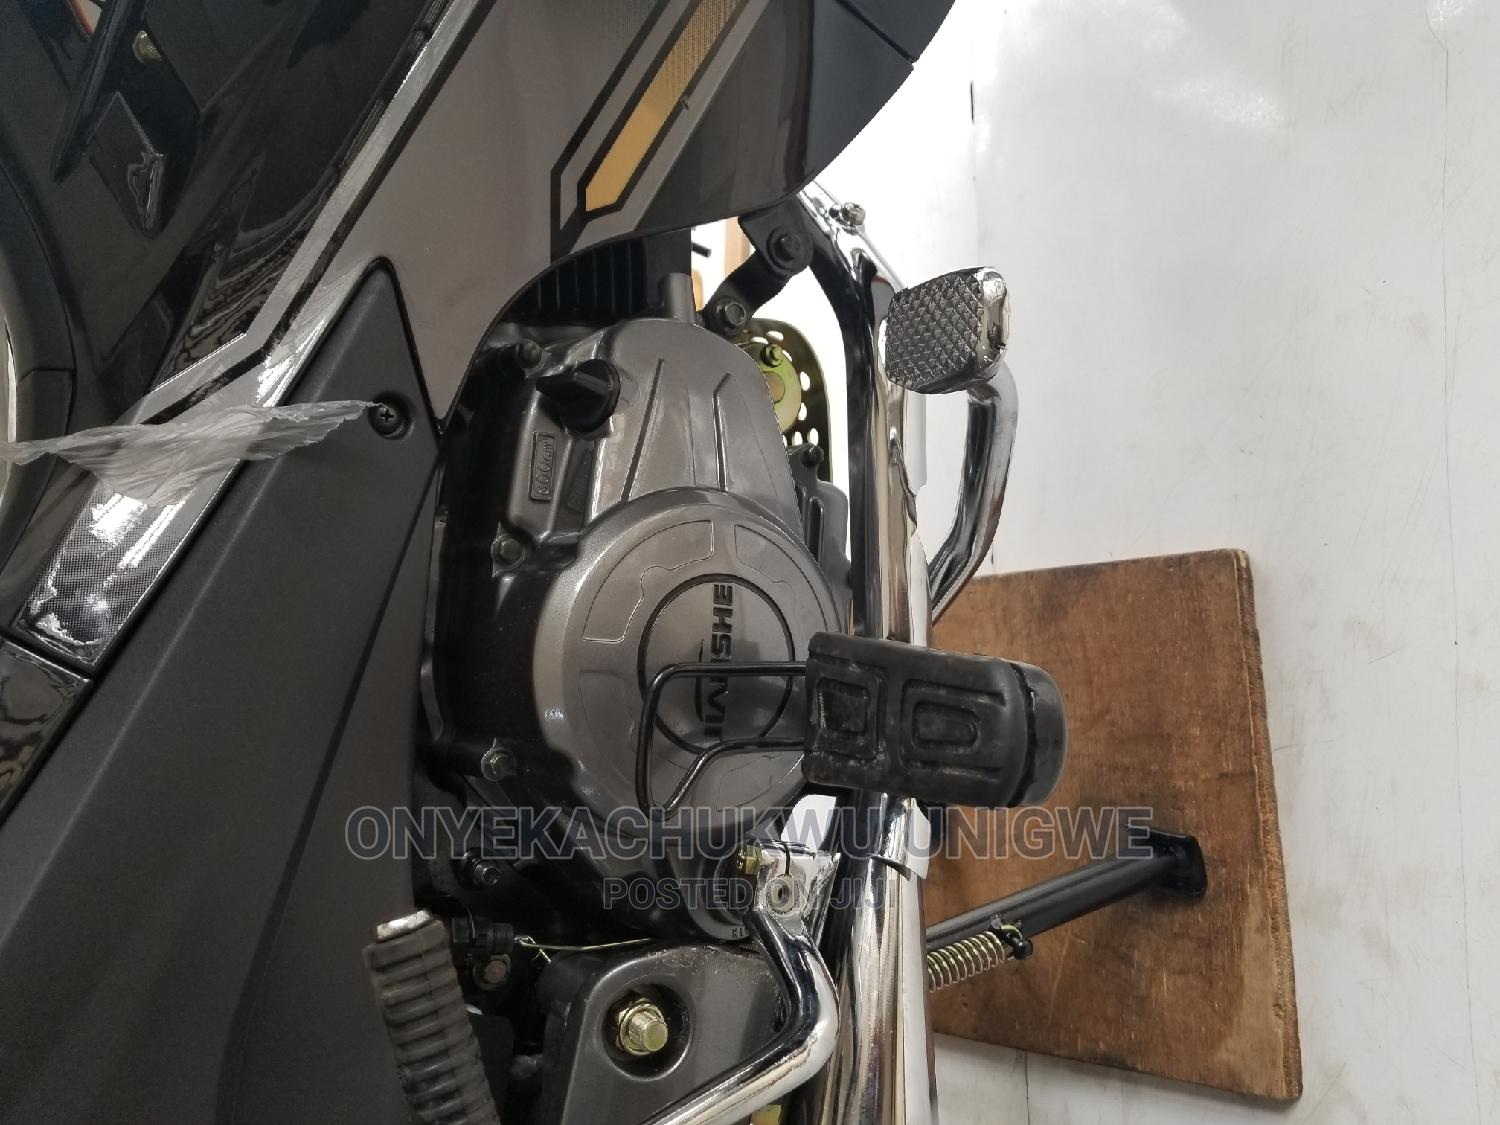 New Motorcycle 2021   Motorcycles & Scooters for sale in Nnewi, Anambra State, Nigeria